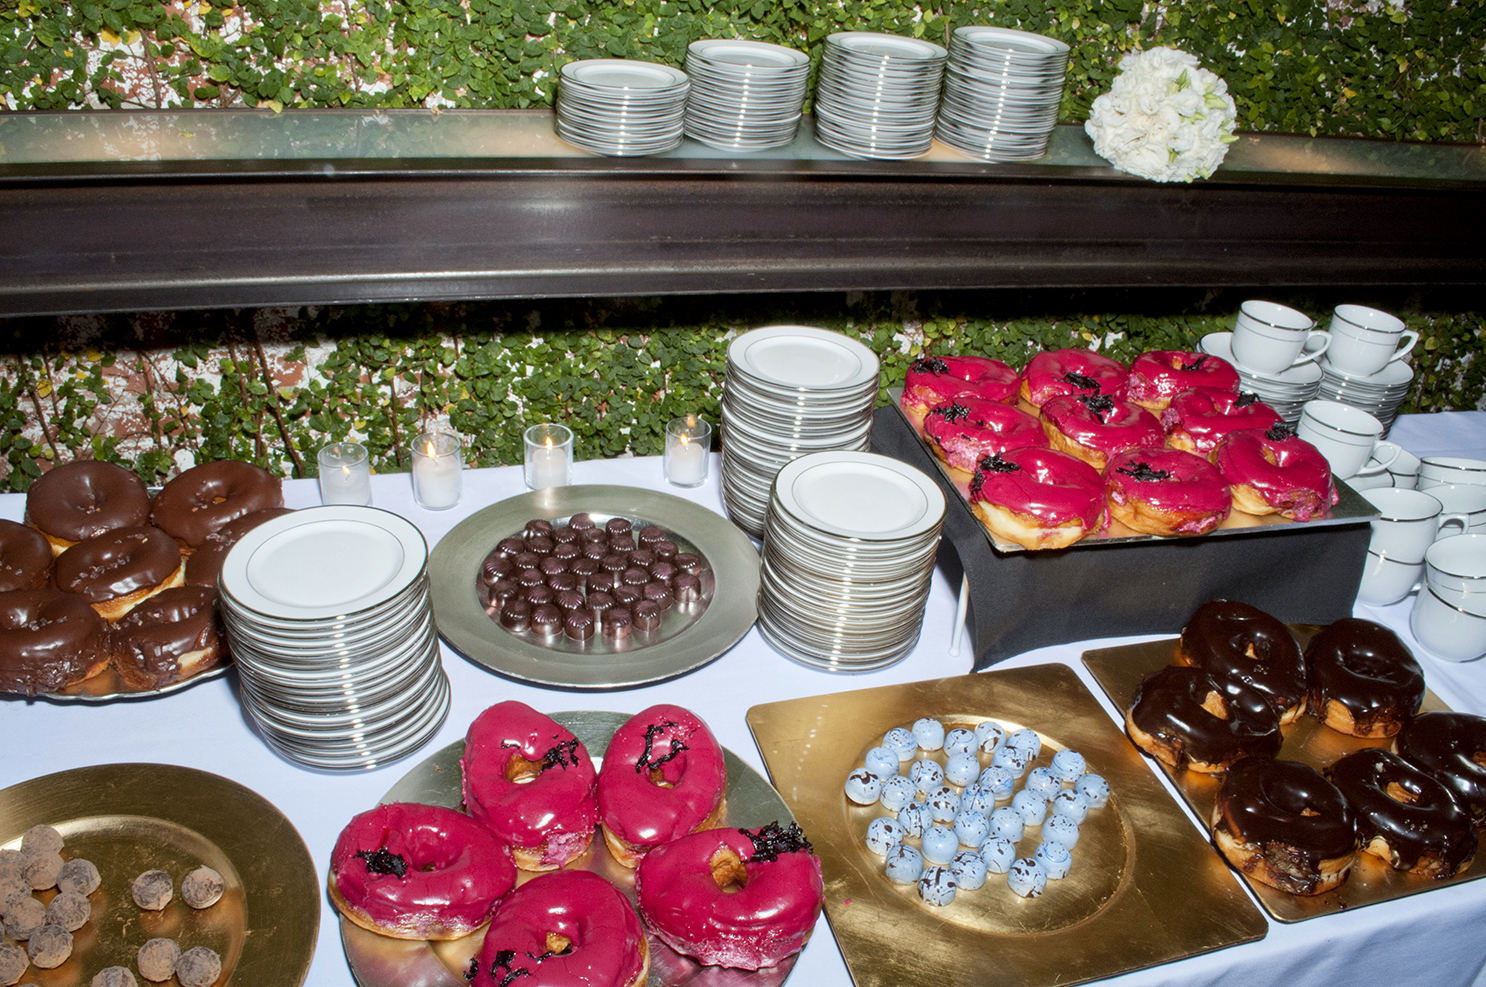 eat and drink at a wedding dessert table